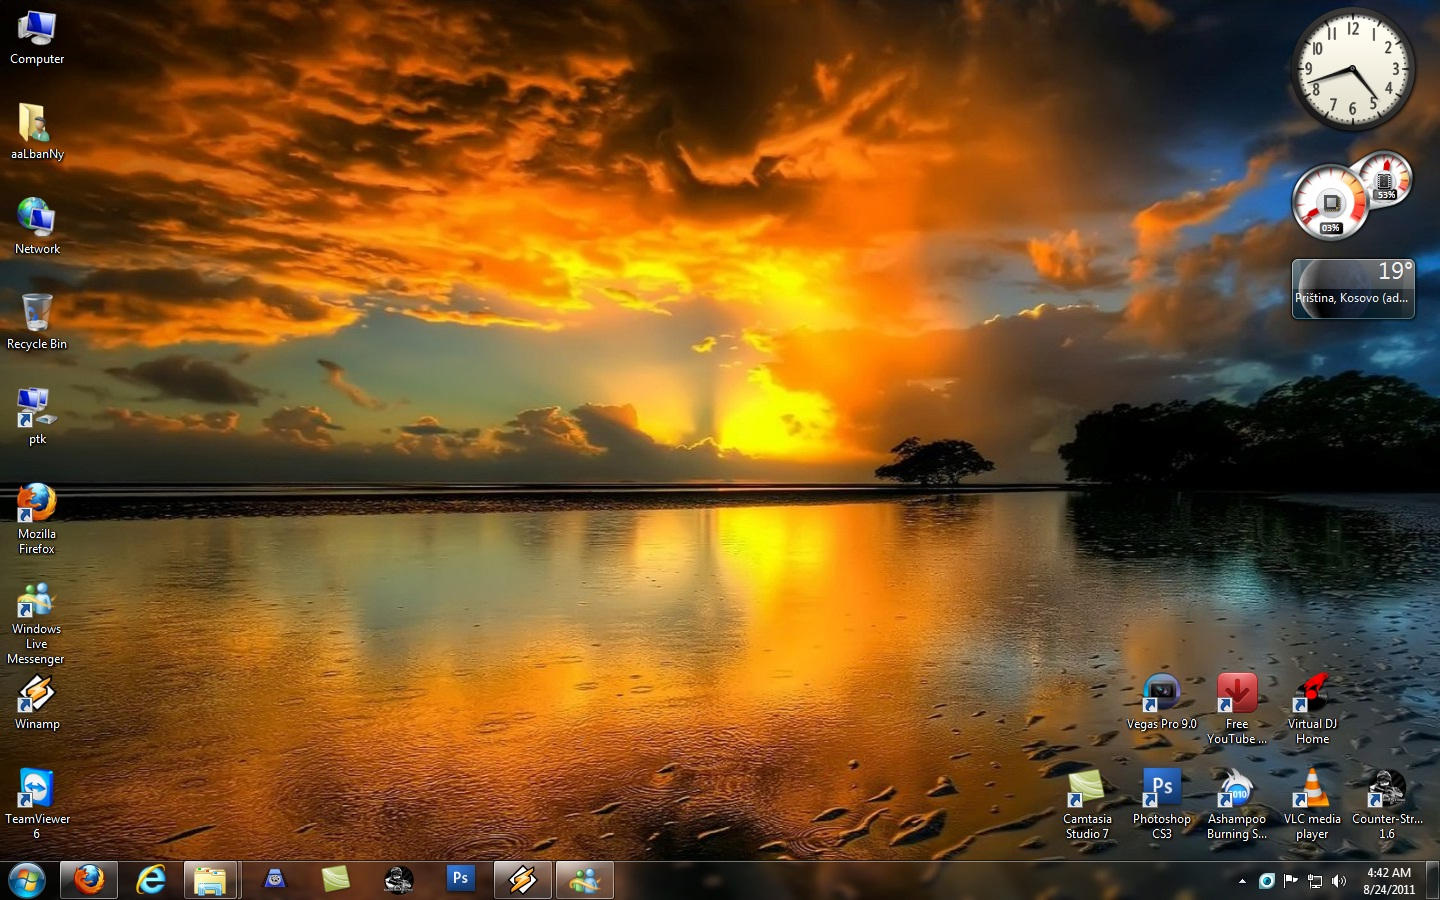 Nature theme for windows 7 by aalbanny on deviantart - Nature wallpaper windows 7 ...